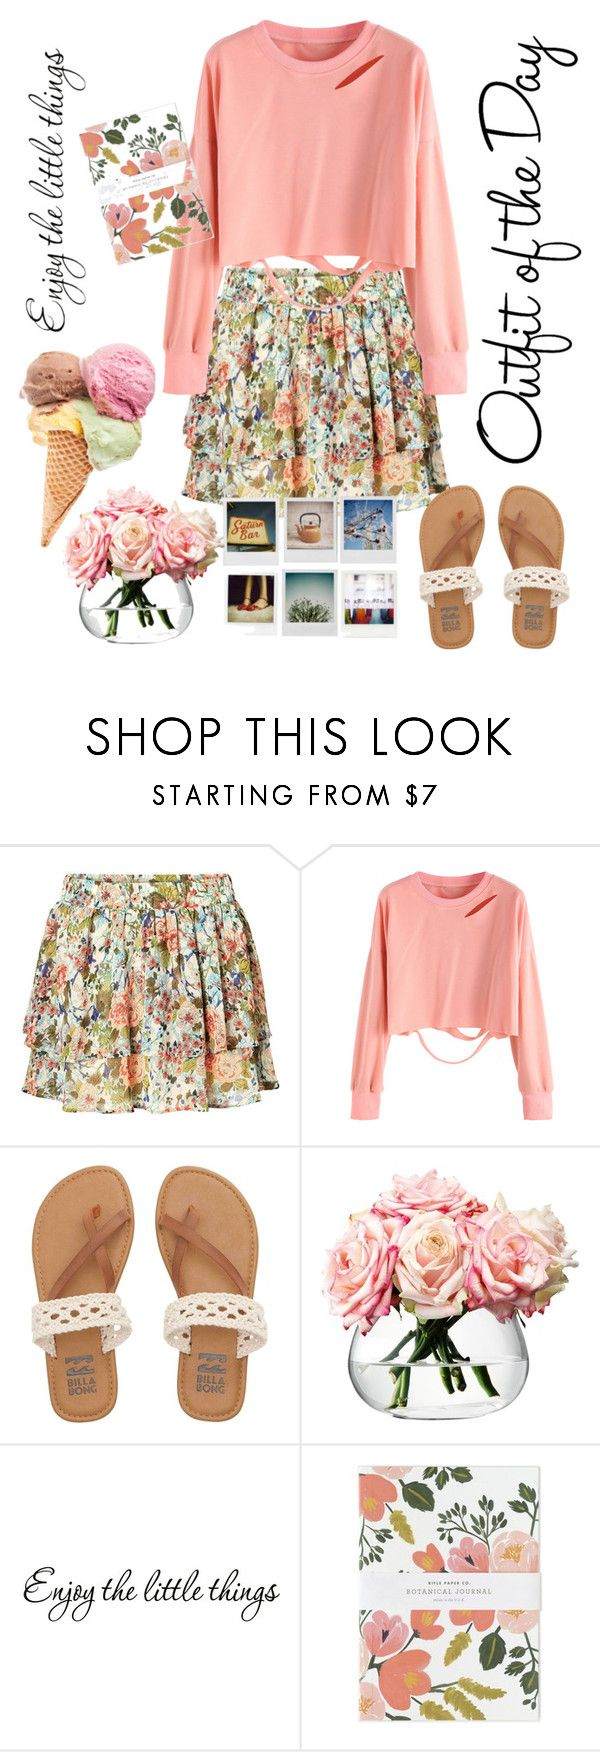 """Floral Mini Skirt"" by alongcametwiggy ❤ liked on Polyvore featuring Vero Moda, Billabong, Polaroid, LSA International, Petit Bateau, WALL and Rifle Paper Co"